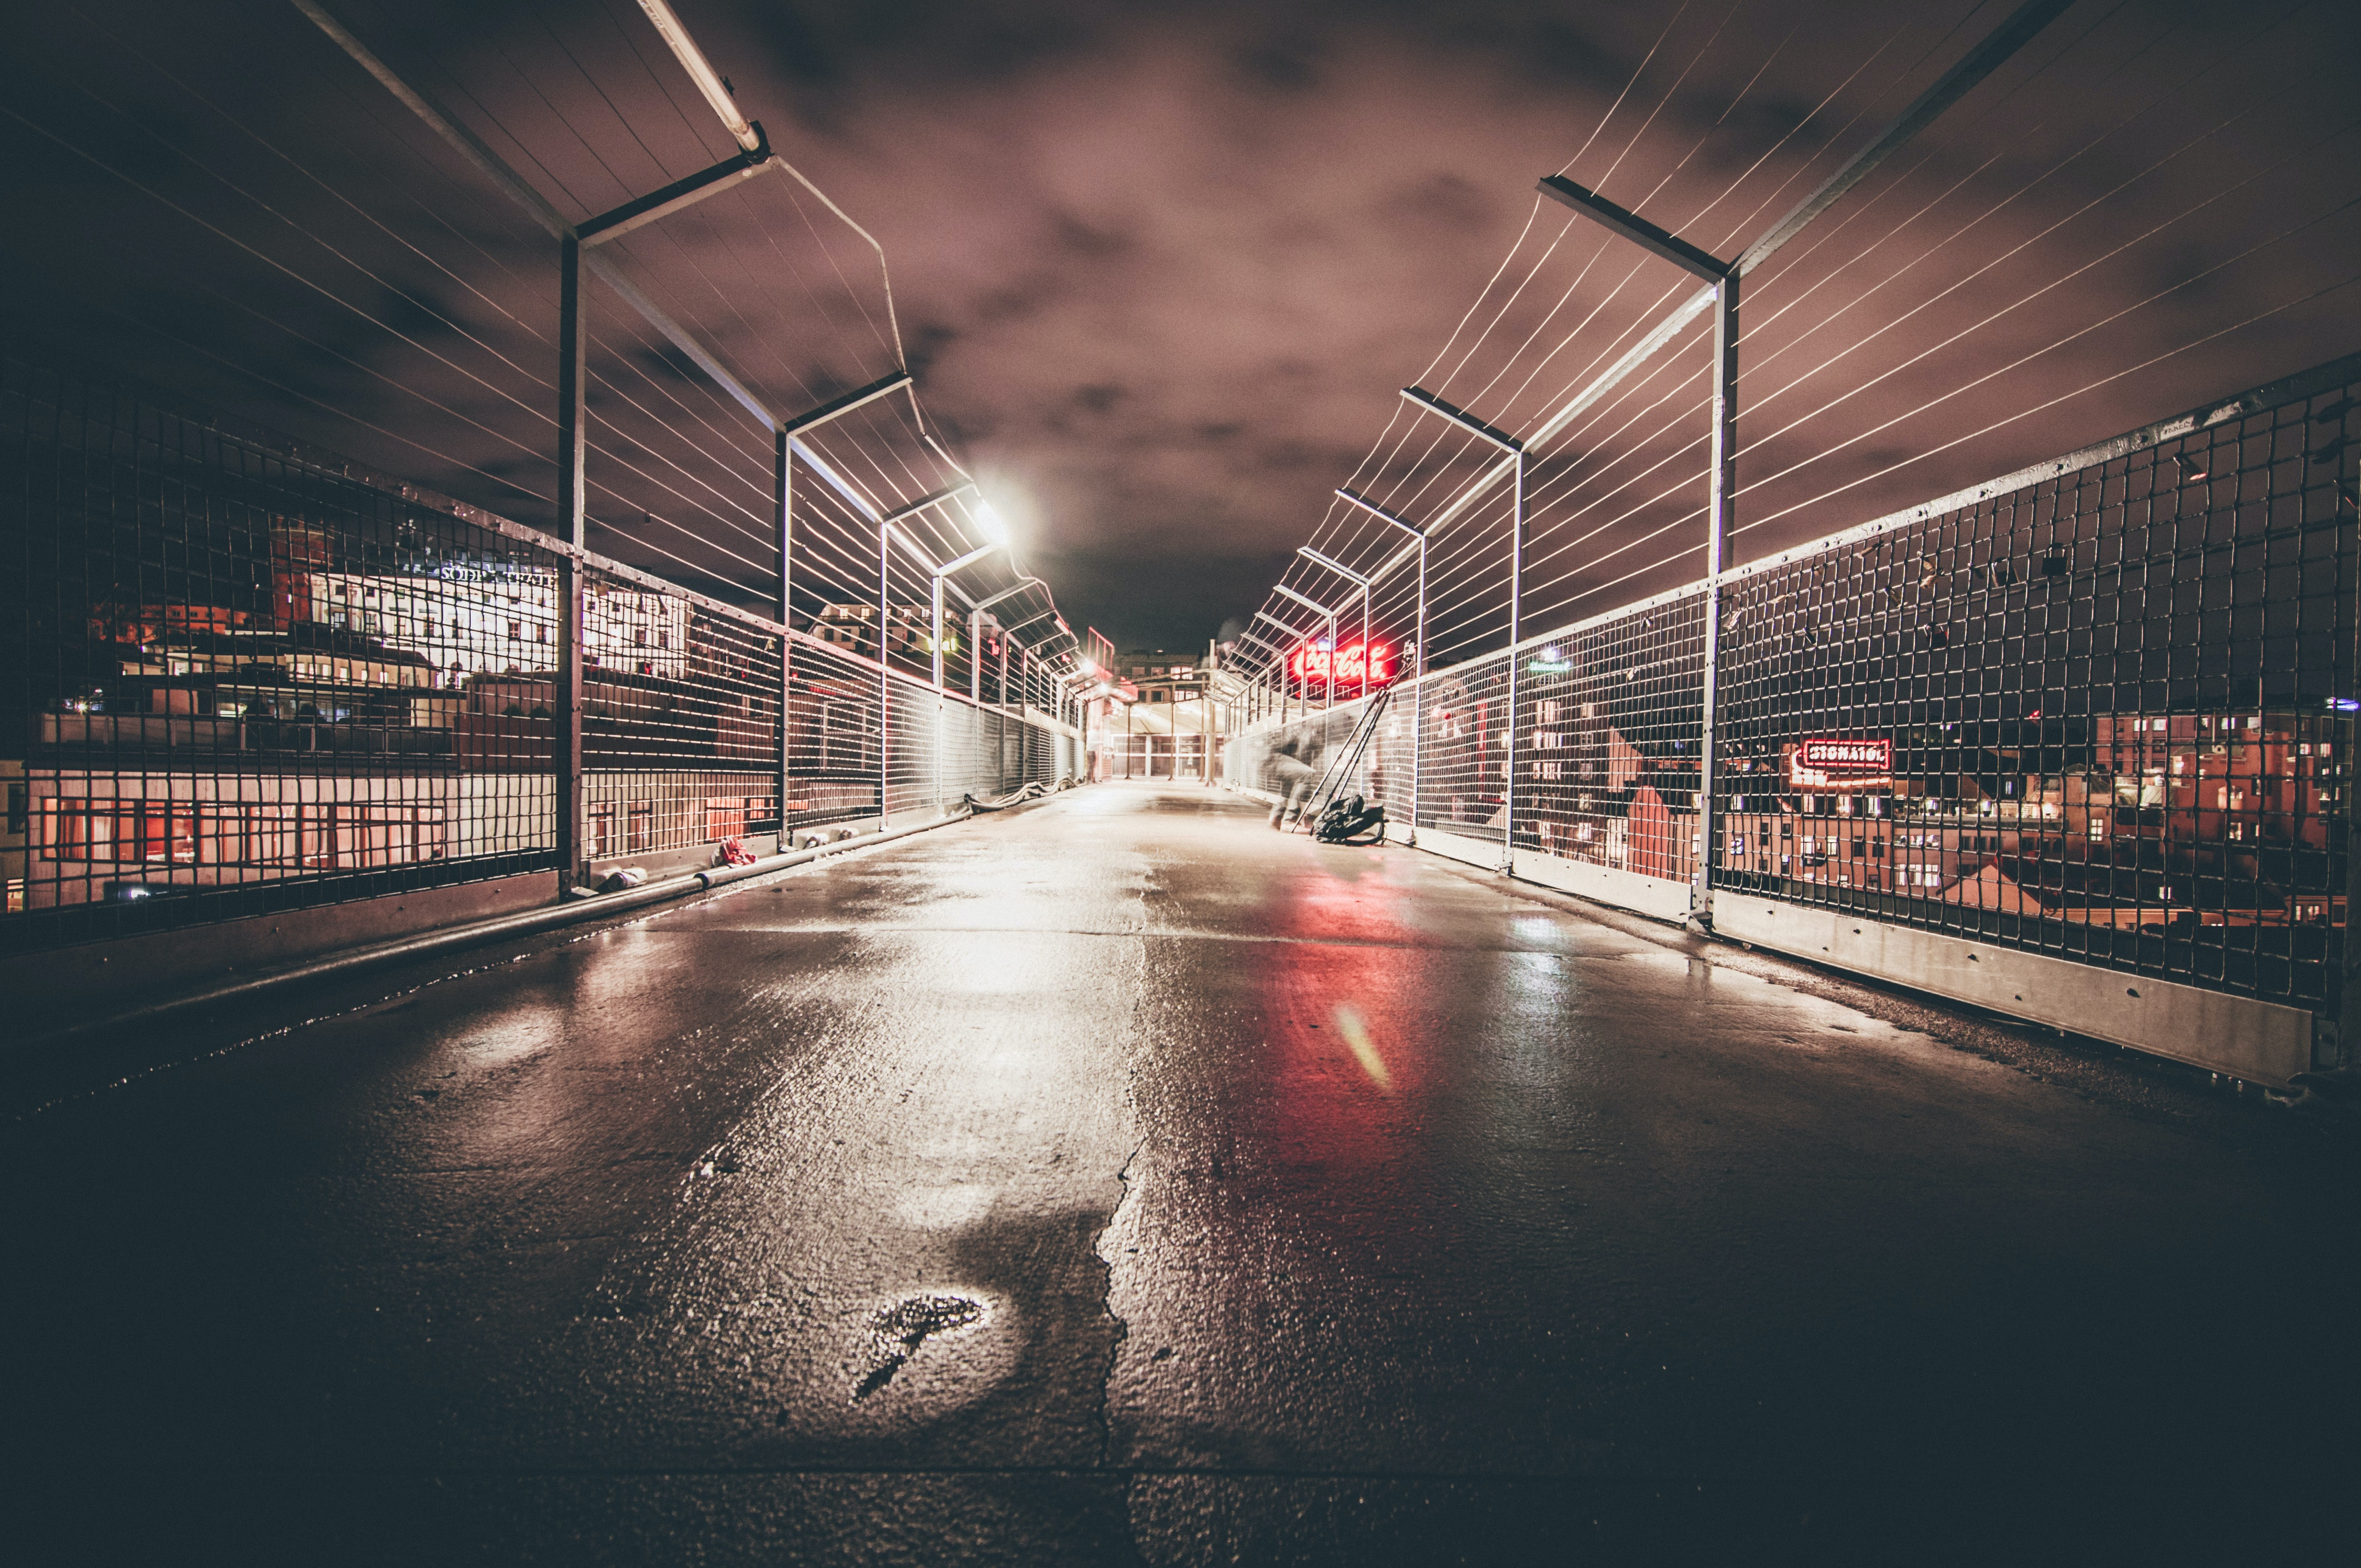 concrete pavement enclosed with chain fences at night time